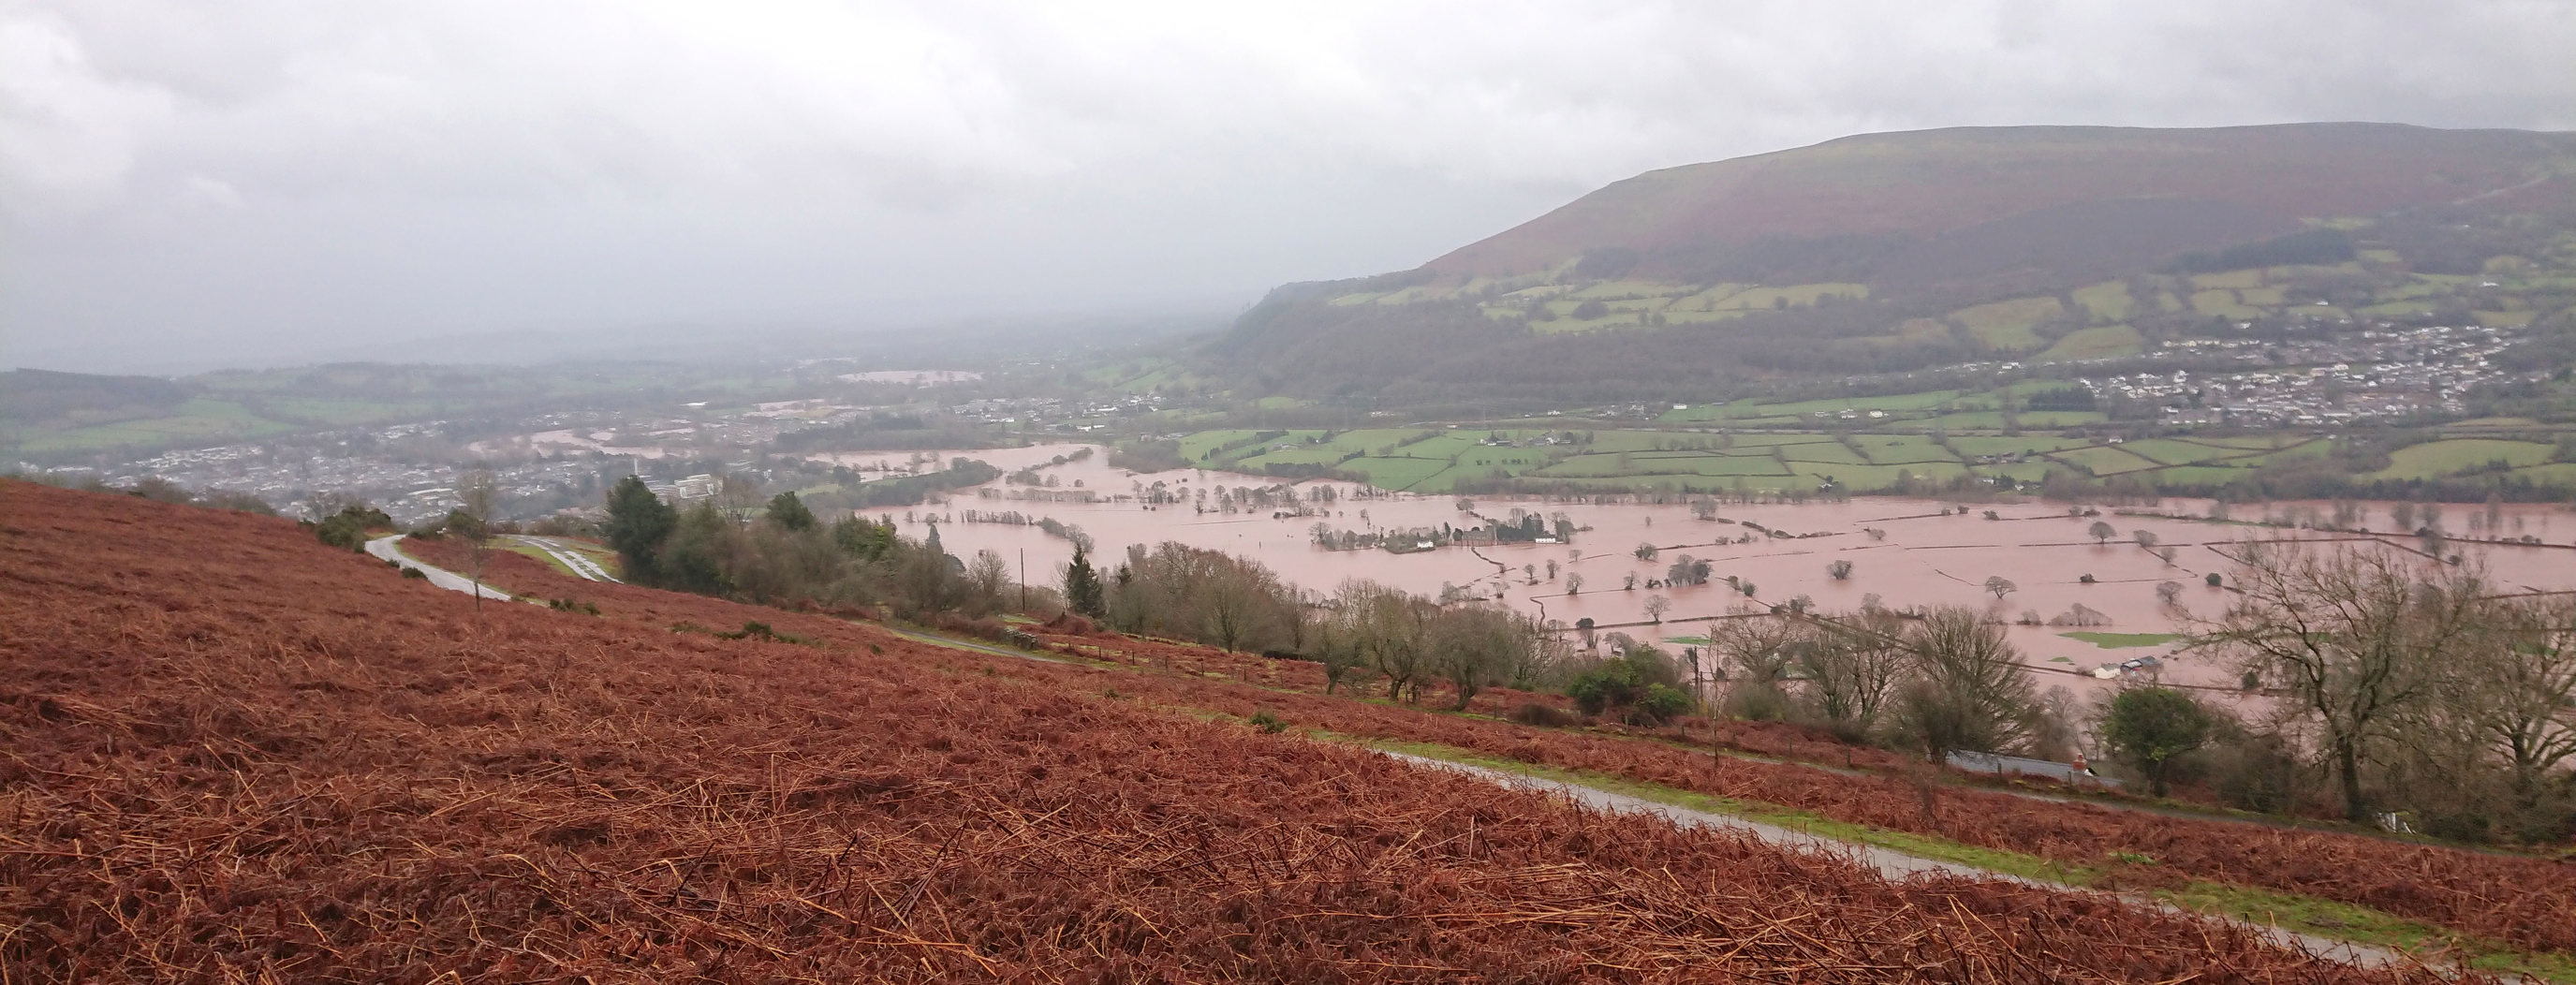 The Usk Valley near Abergavenny on Sunday